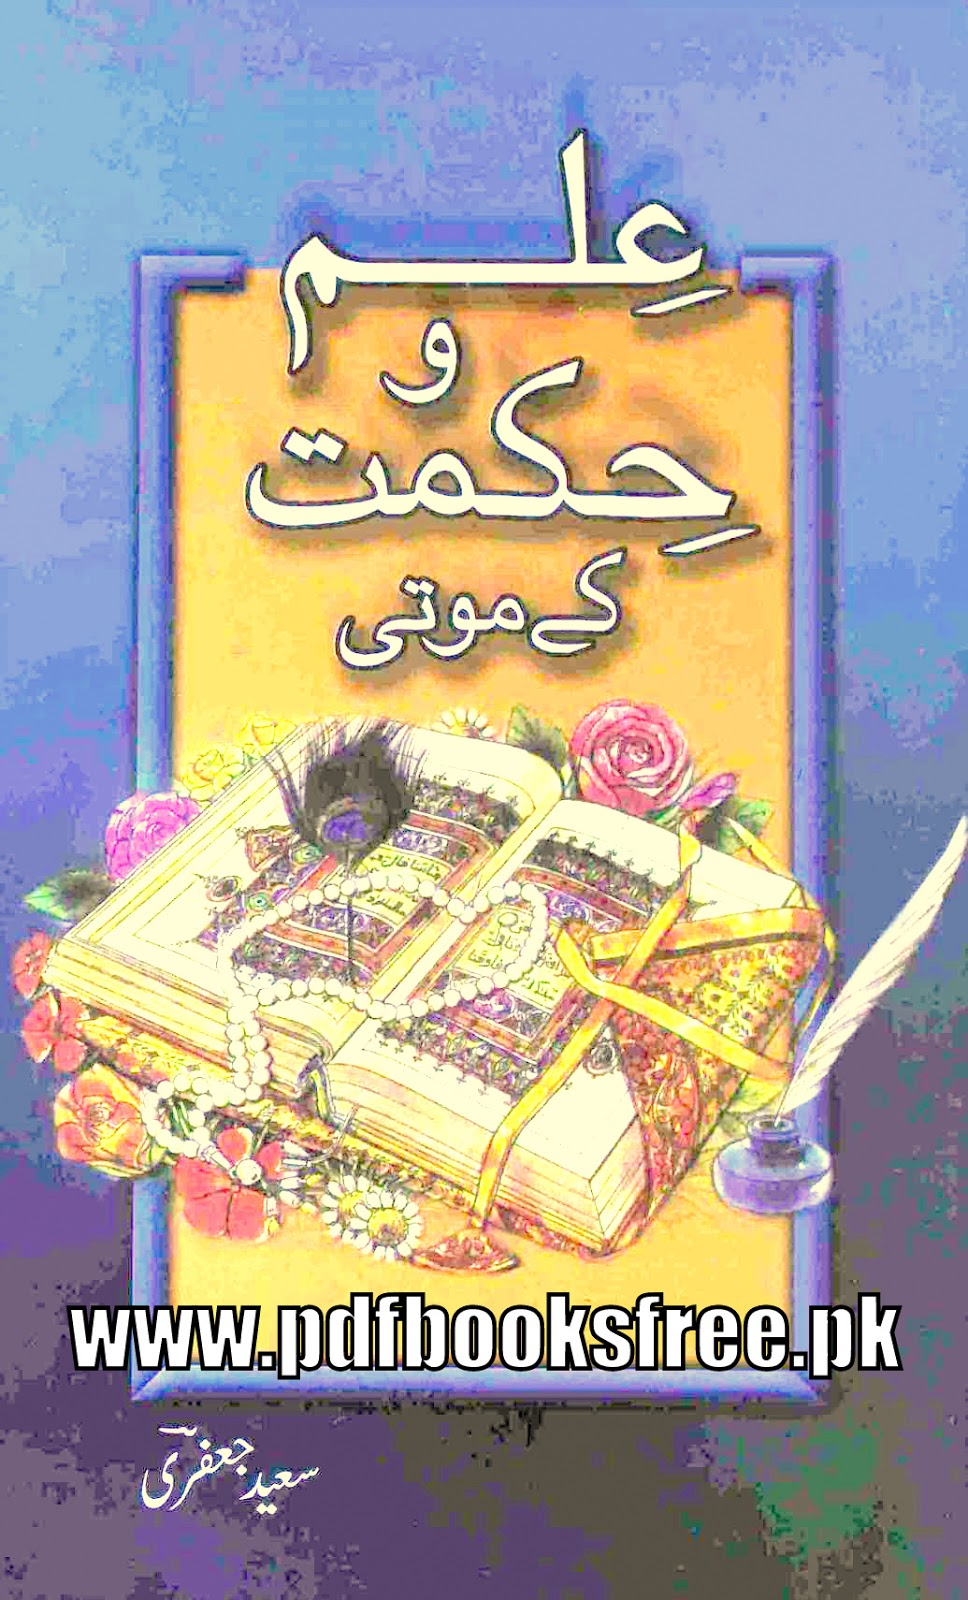 ilm o hikmat ke moti by saeed jaffrey   urdu books